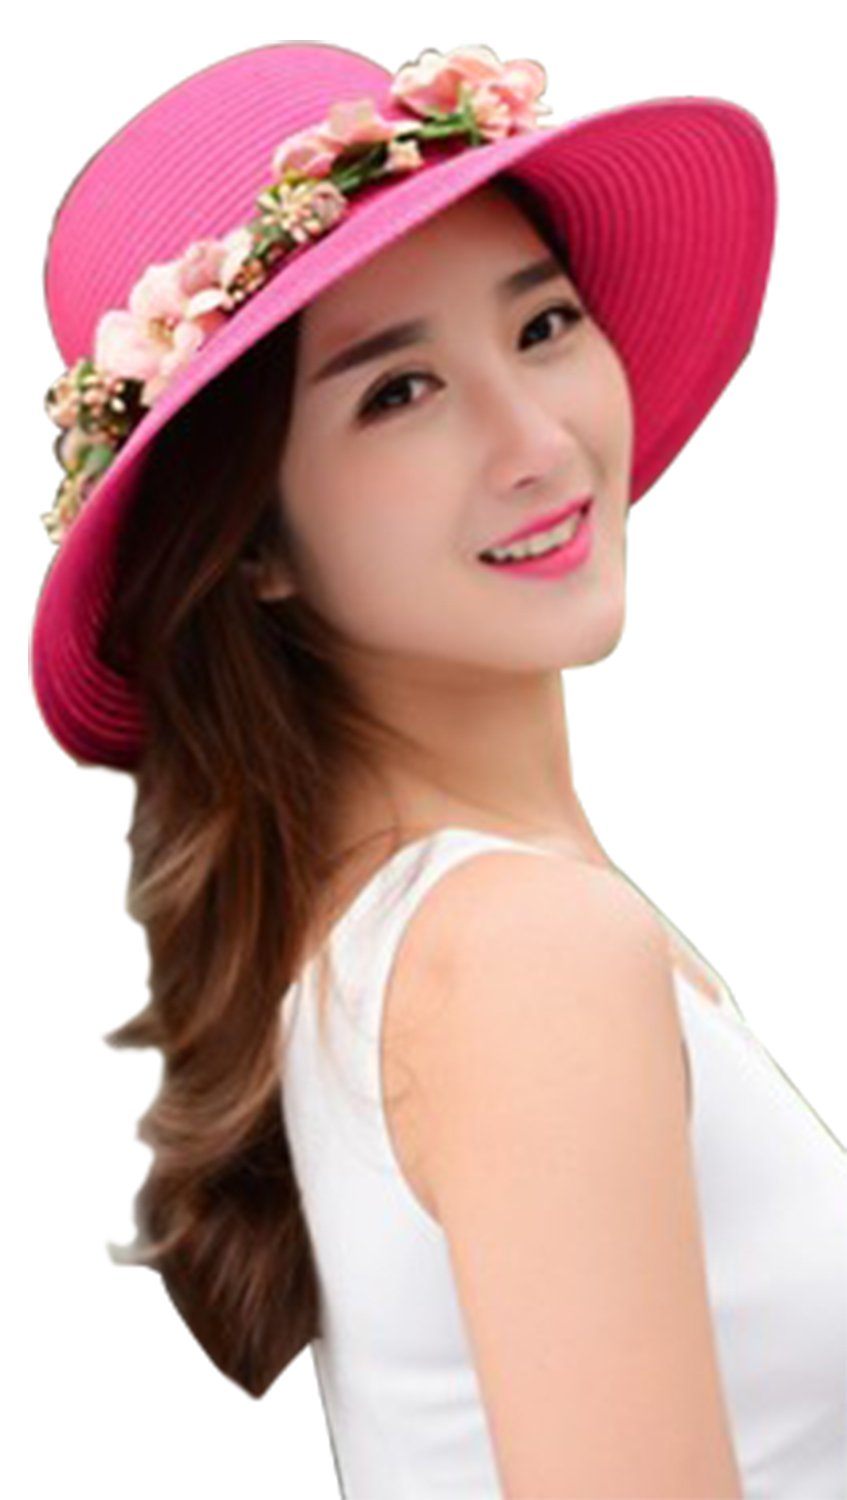 Lovful Girls Spring Summer Casual Straw Hats Floral Décor Travel Packable Sun Visor Bucket Cap with Chin Strap, Fuchsia